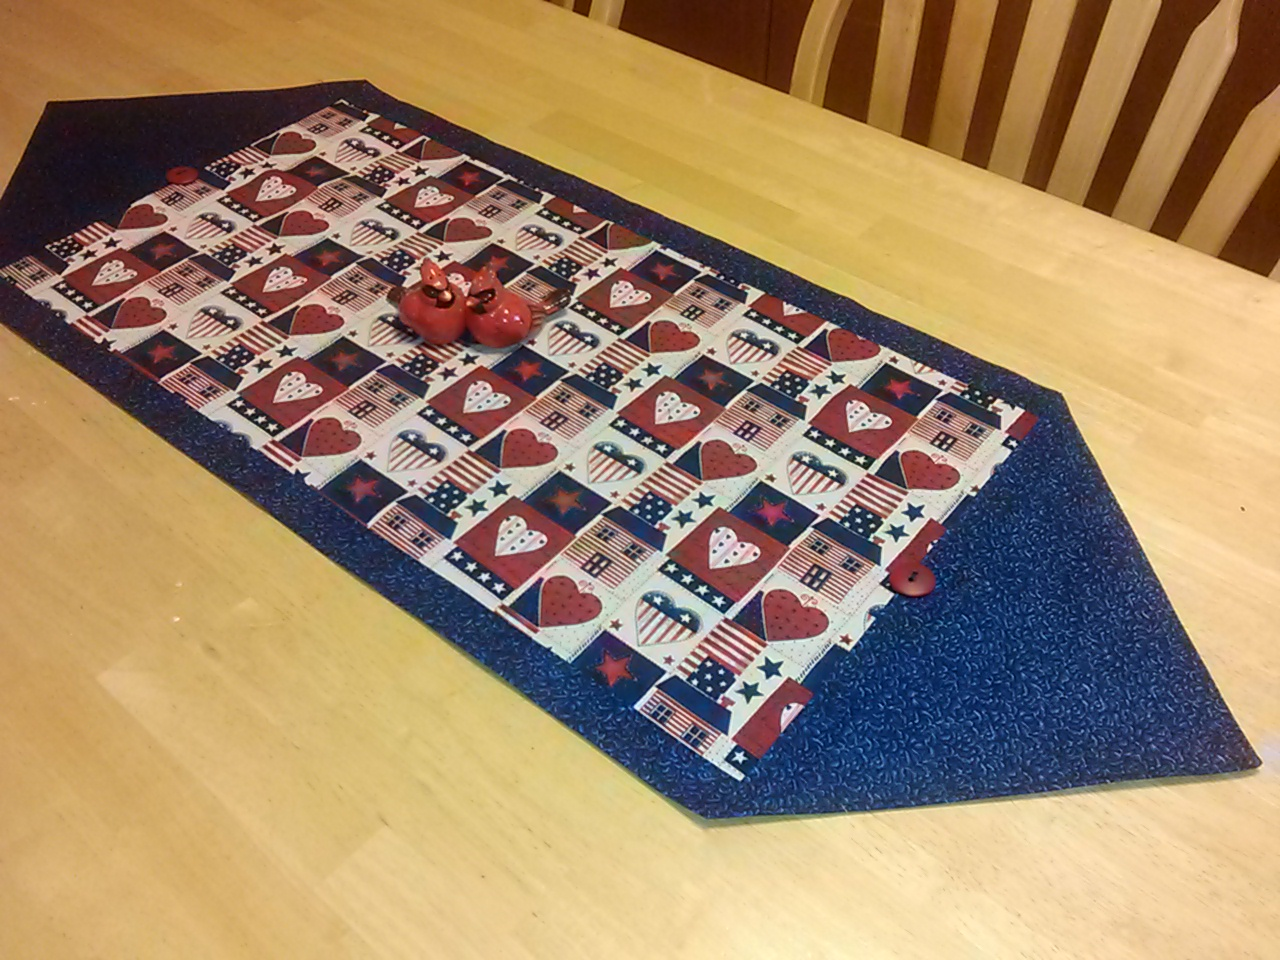 Just one more thing pin it do it 10 minute table runner for 10 min table runner